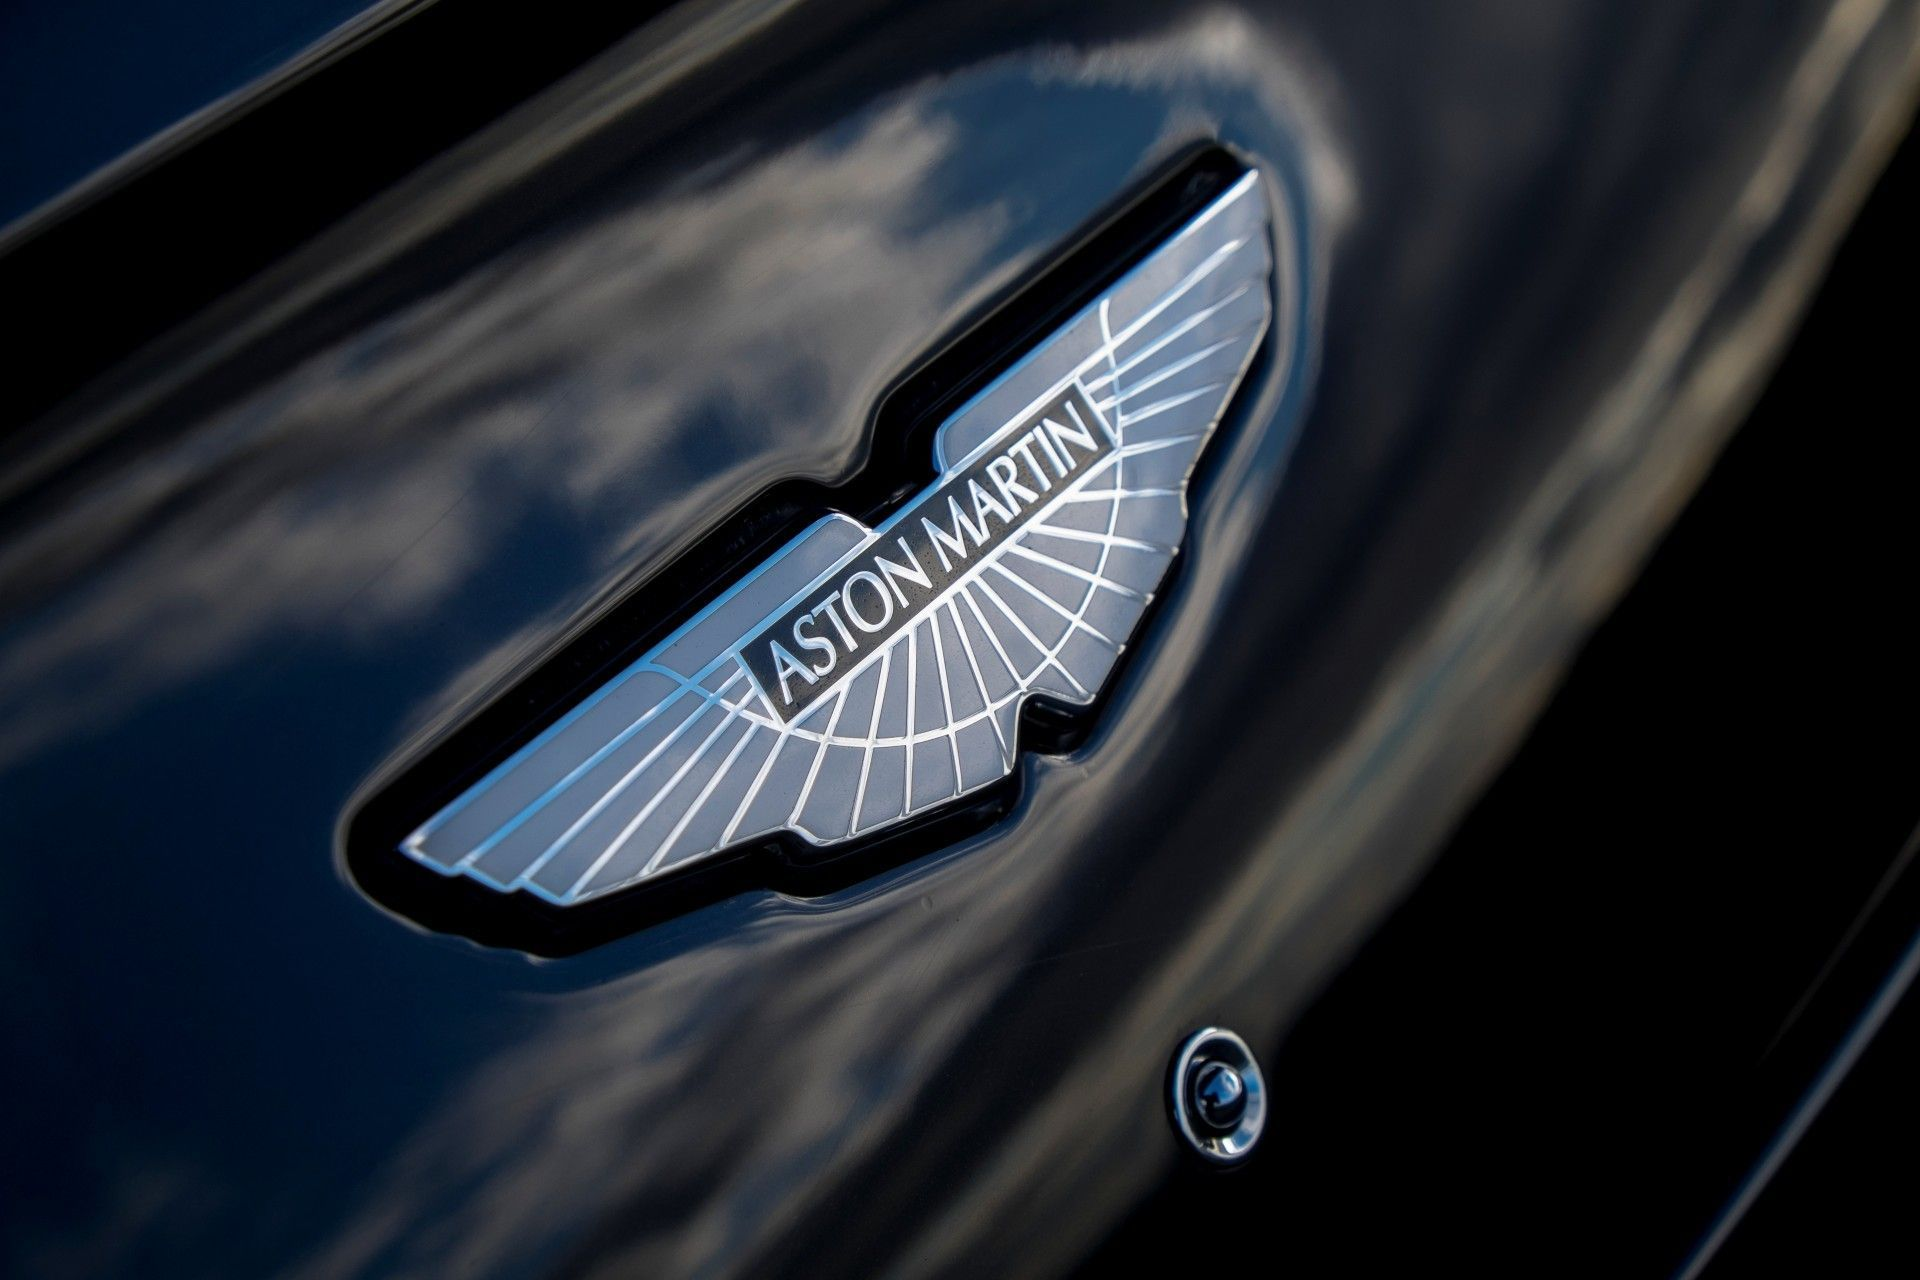 10 Most Iconic Automotive Logos And The Fascinating Stories Behind Them